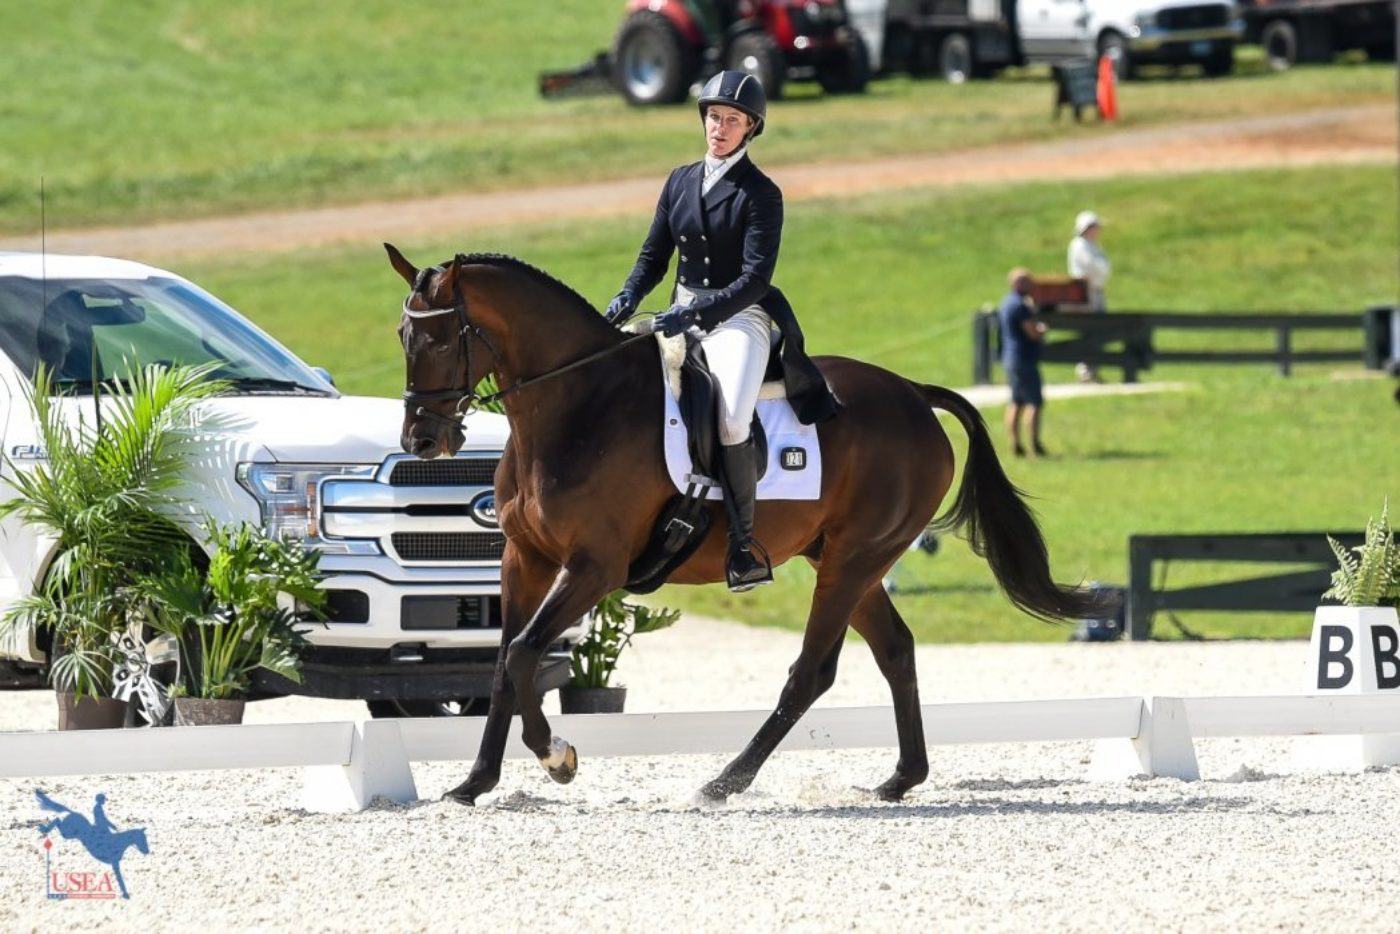 18th - Alexandra Knowles and Sound Prospect - 34.8